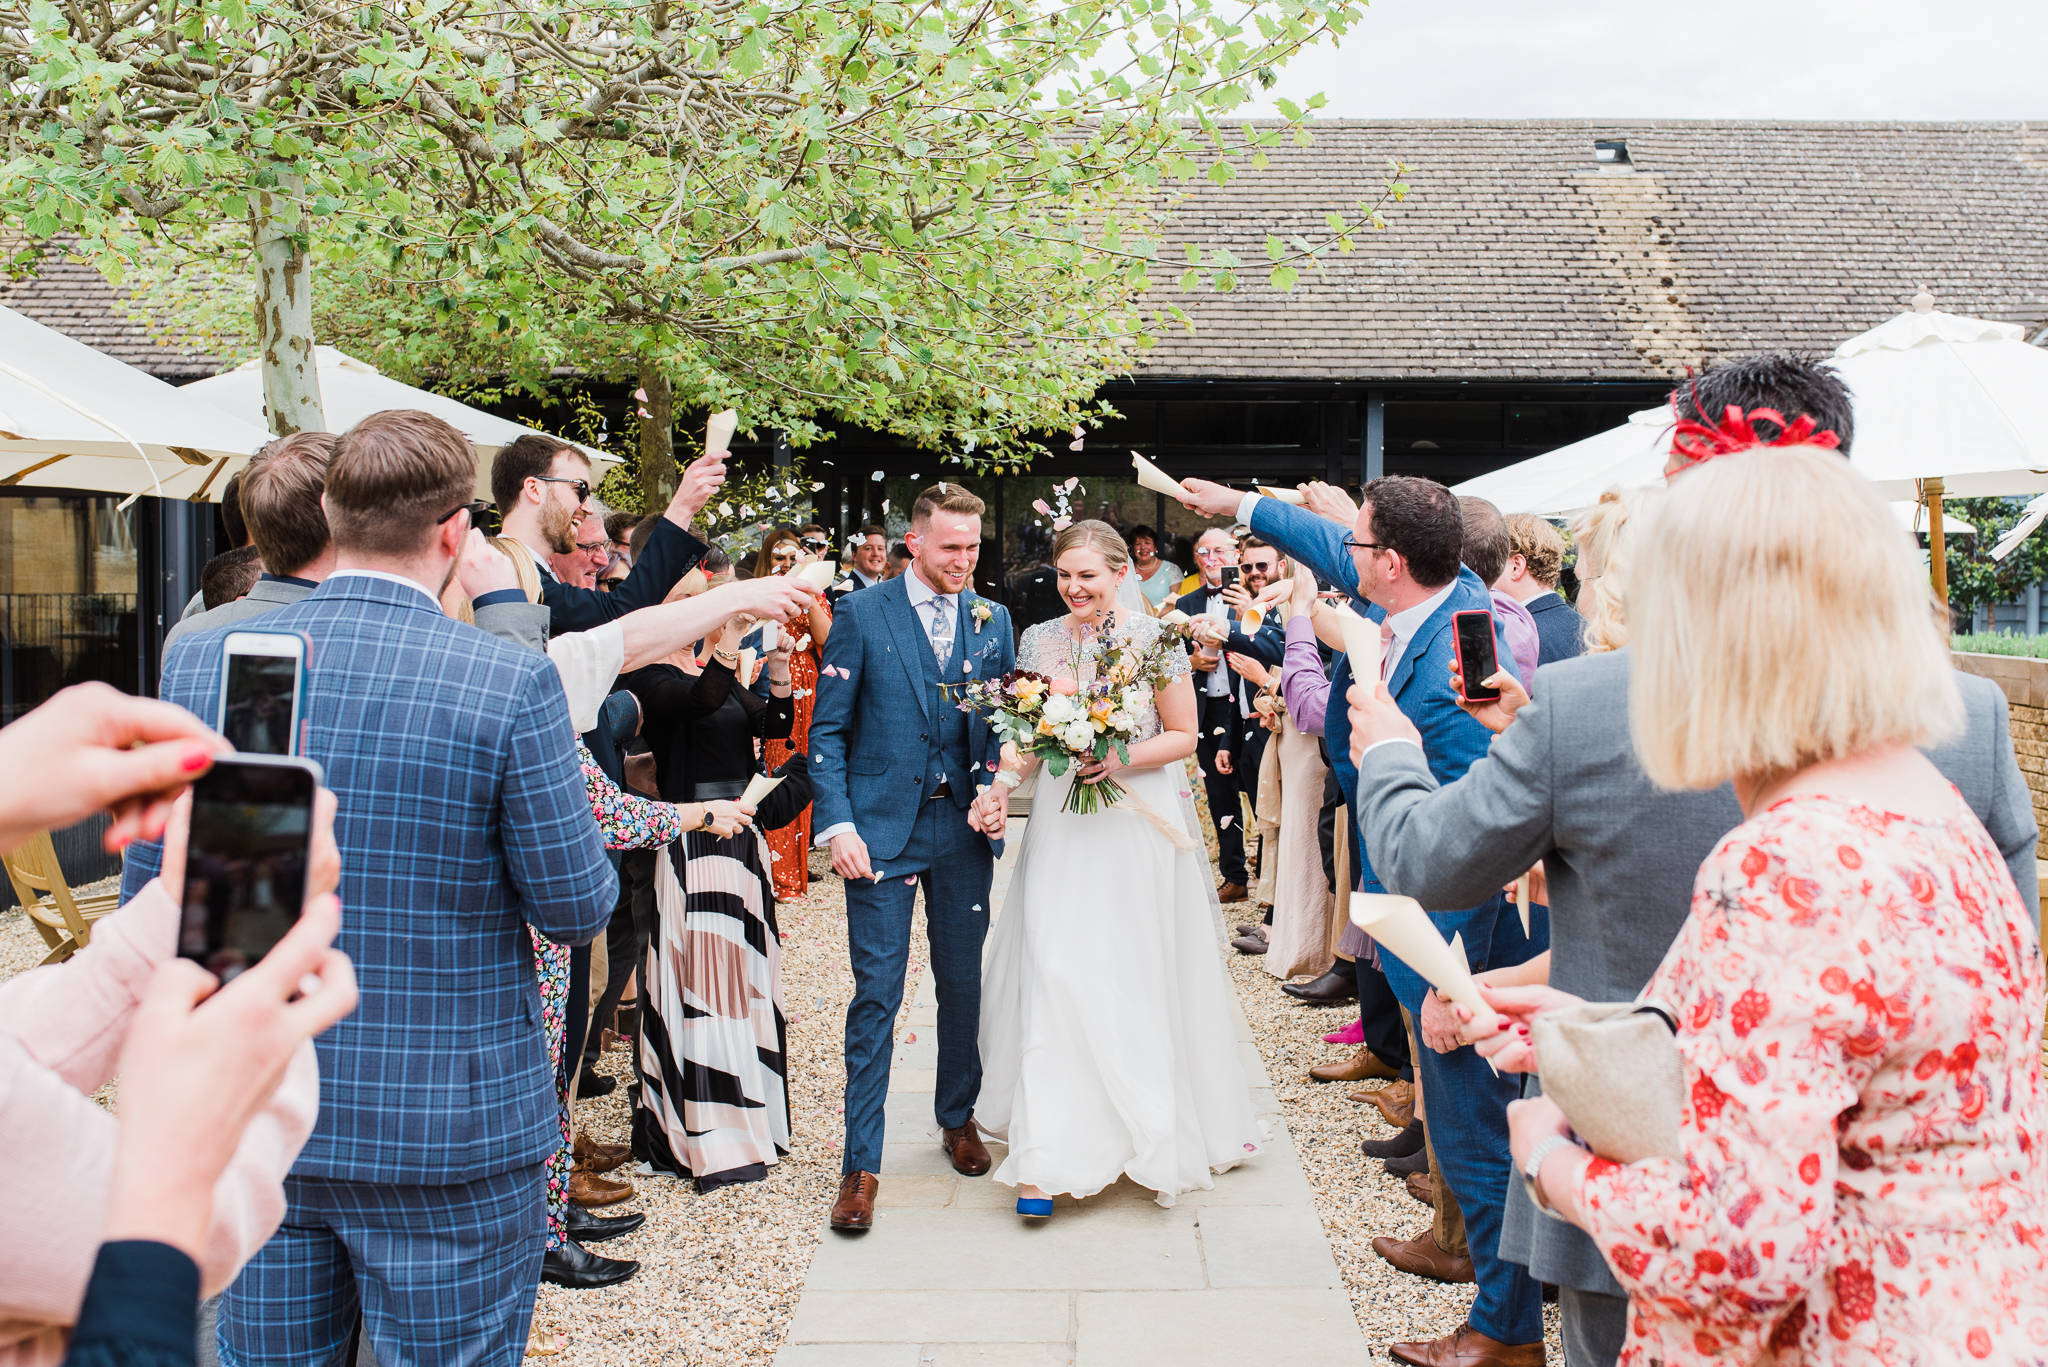 Guest throwing confetti at bride and groom in Lapstone Barn